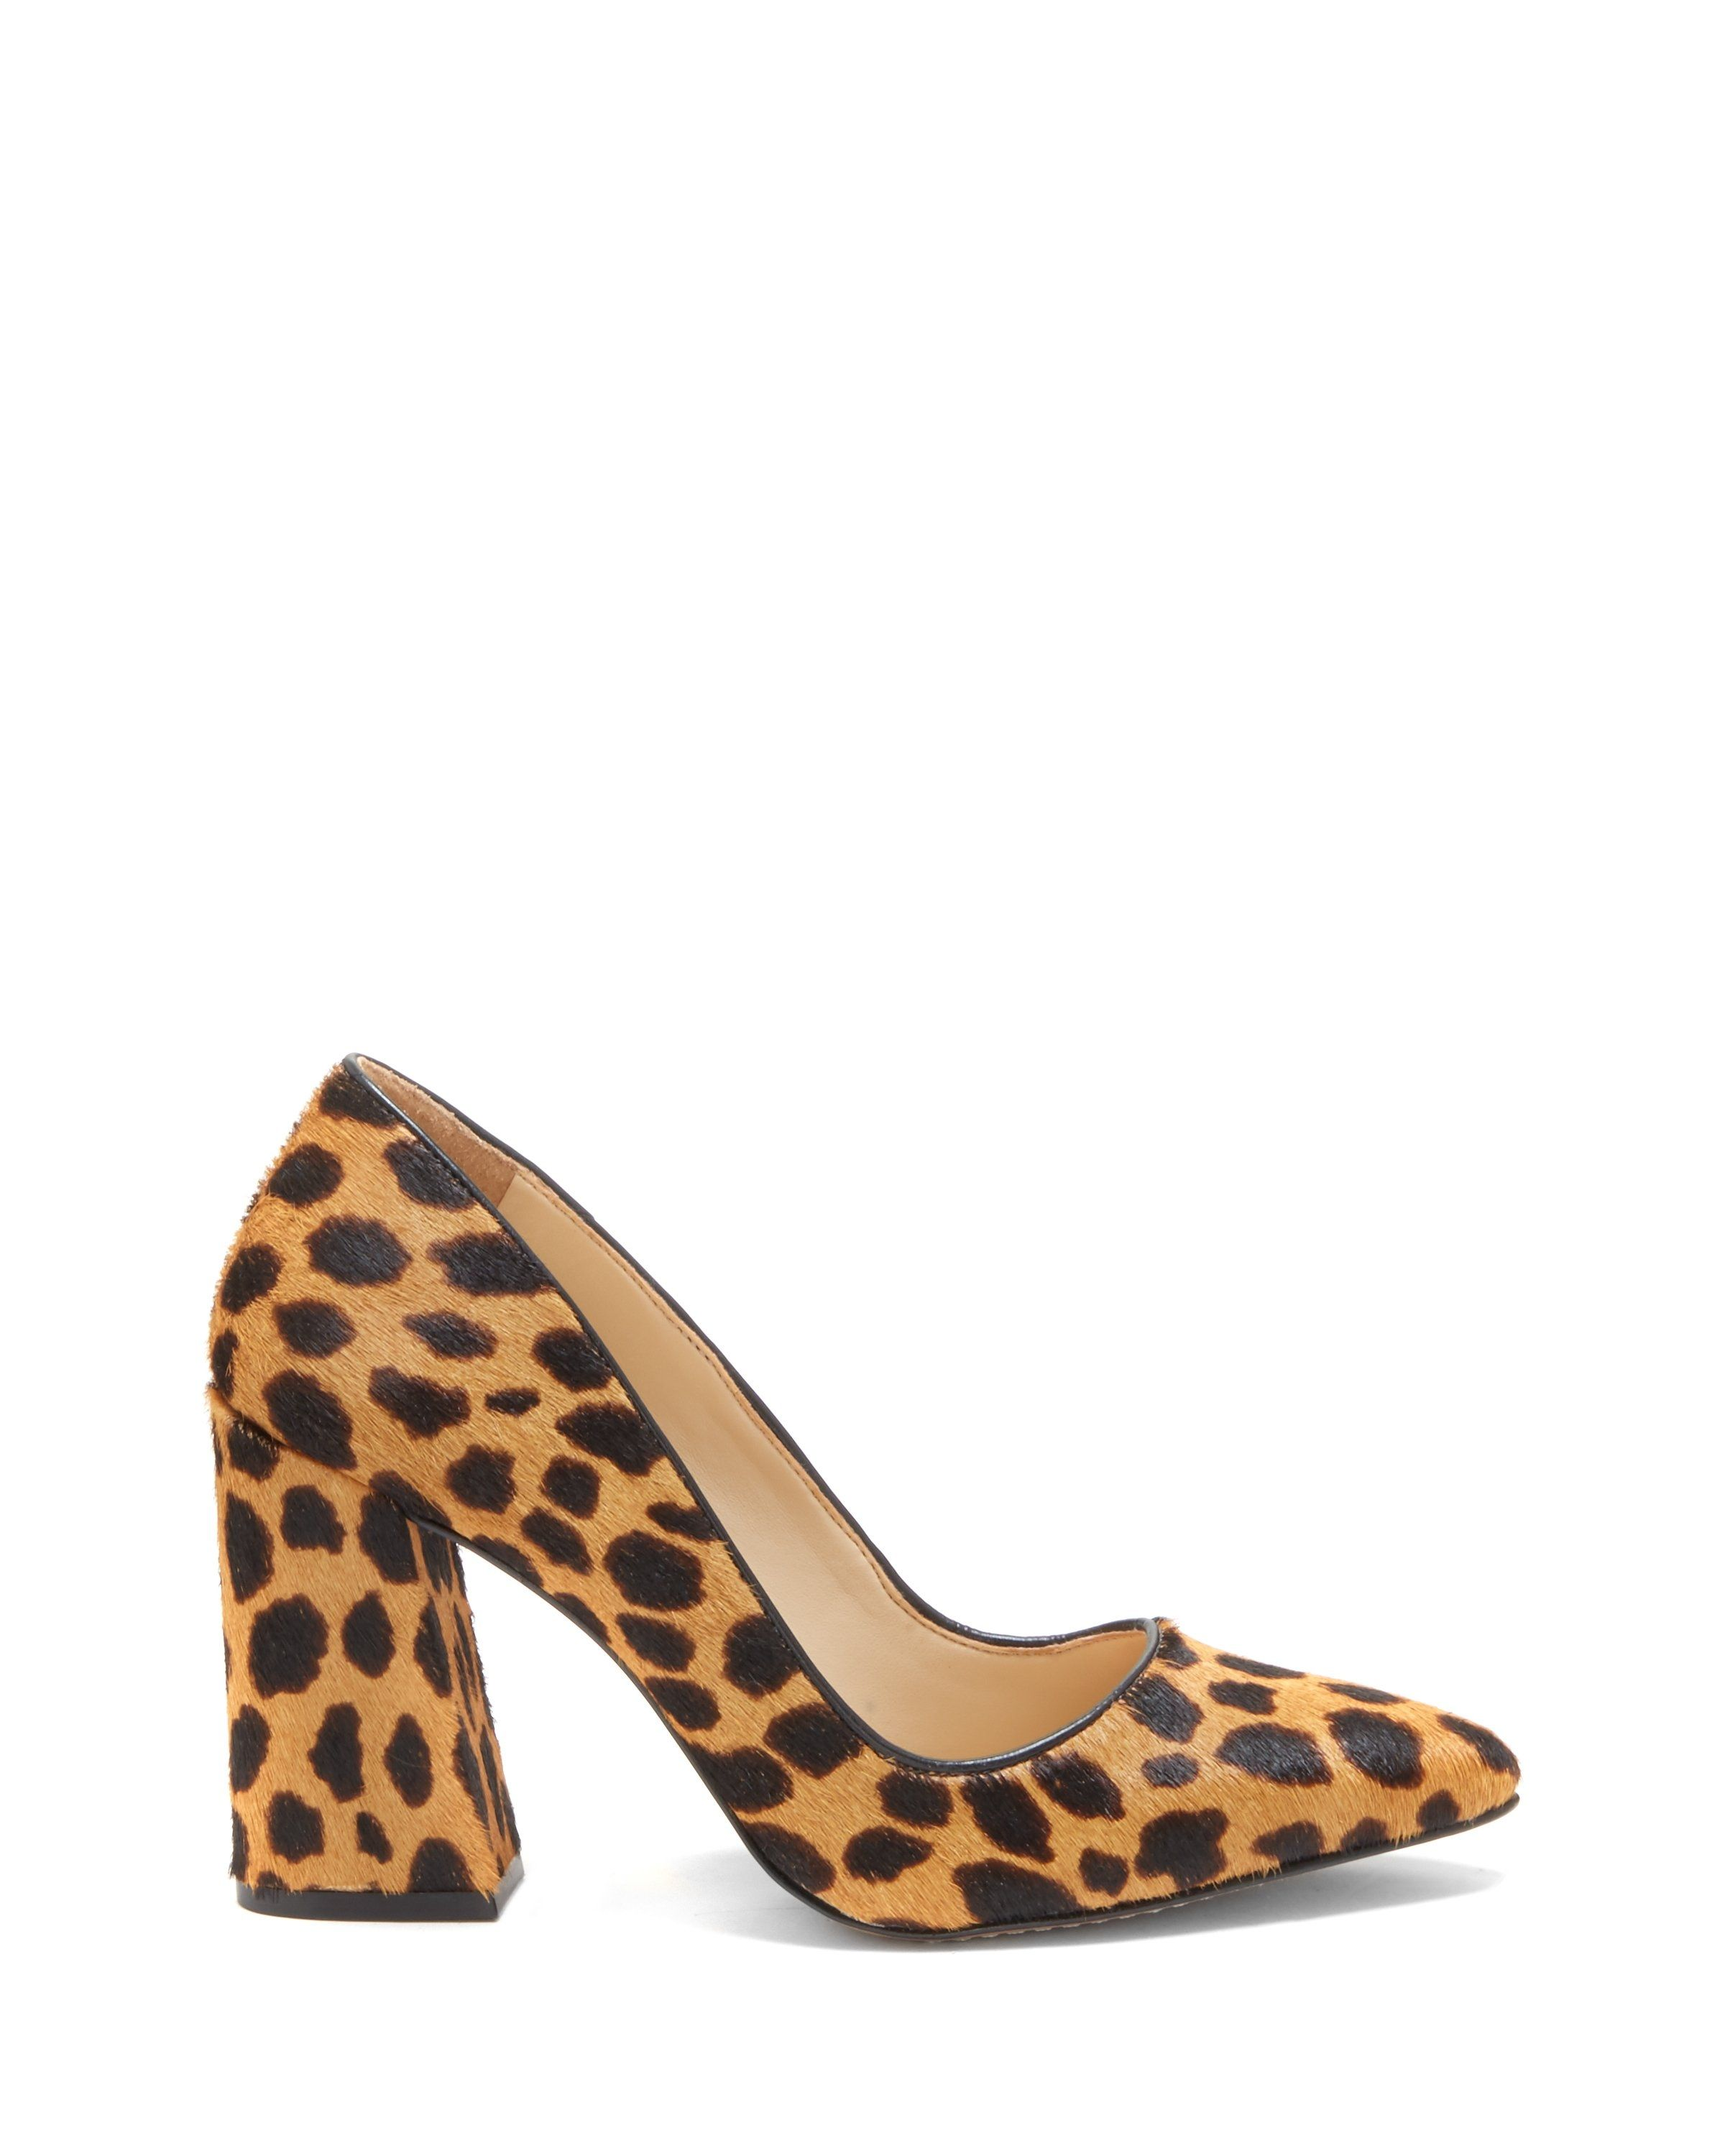 0fcc10ae42545 Vince Camuto Talise2 Pumps  cheetah-print point-toe pumps with a chunky  heel 3.75